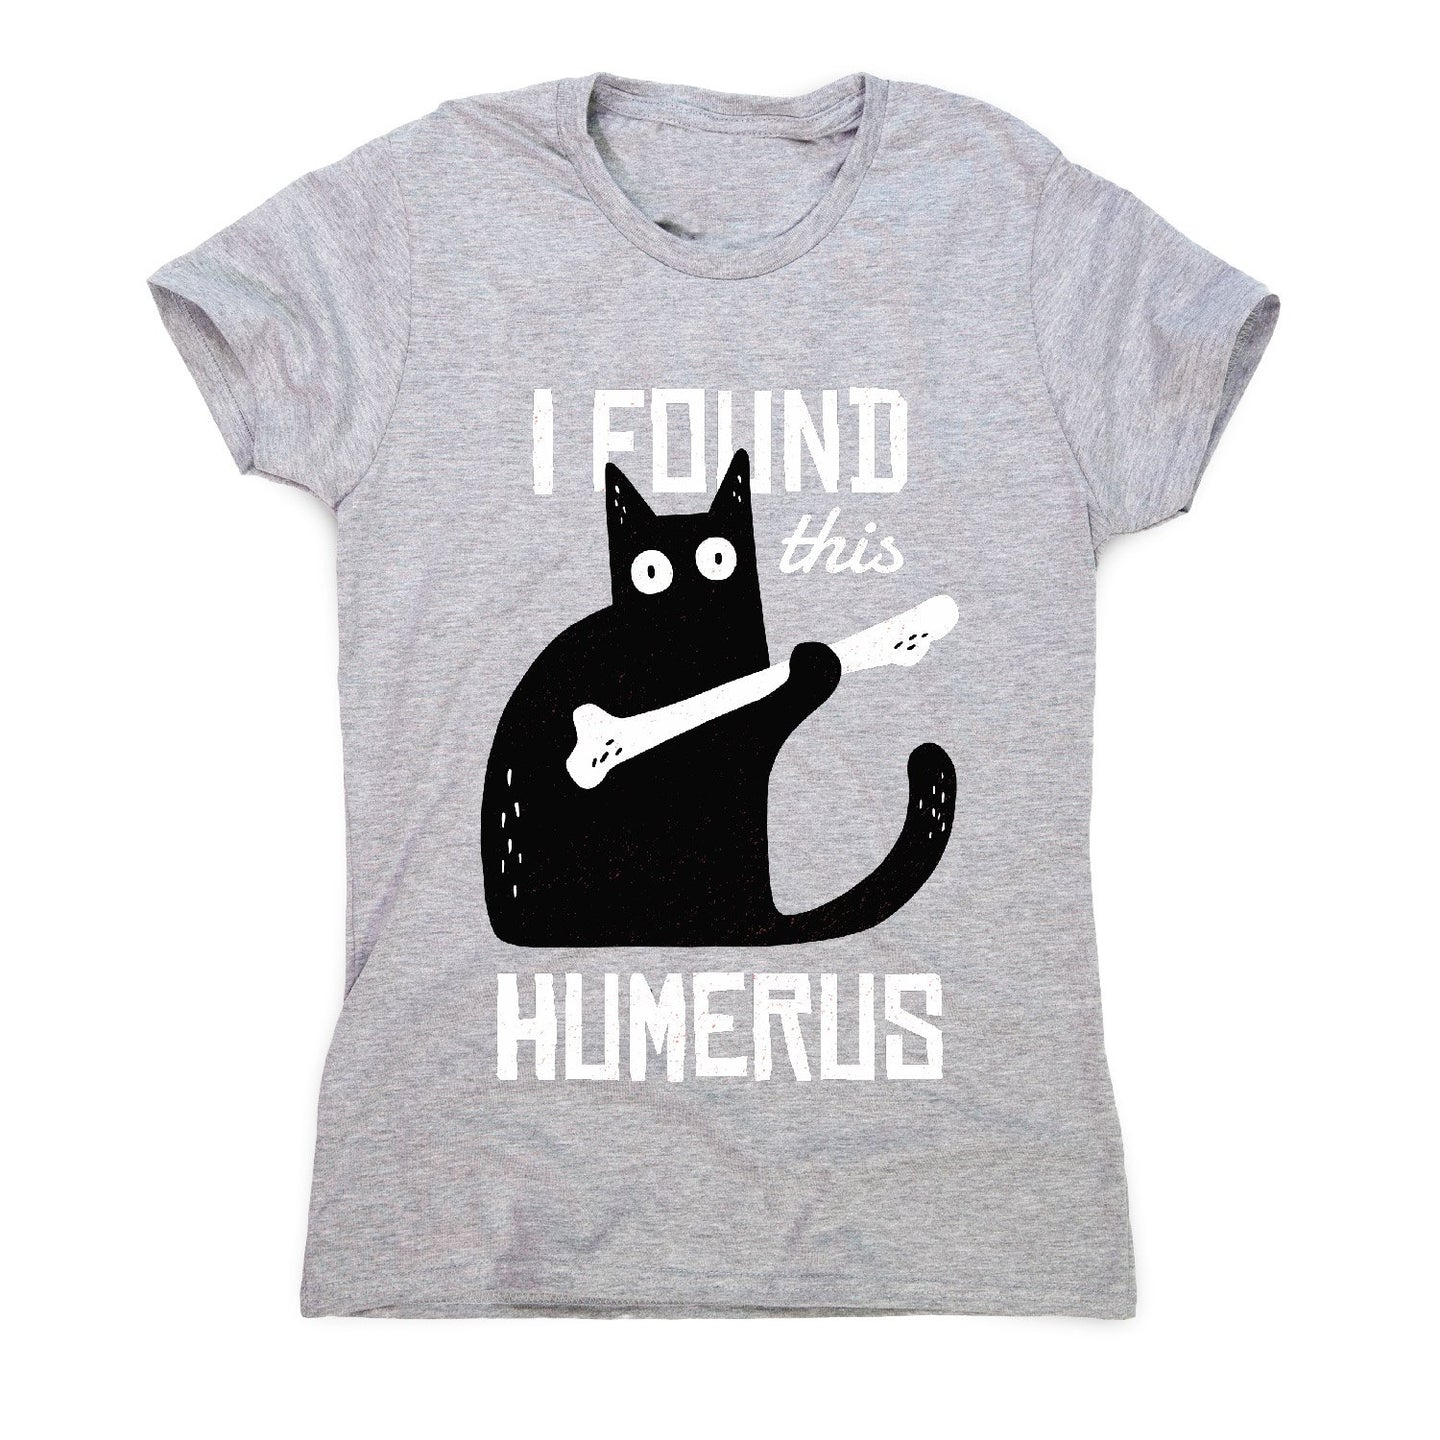 Funny cat - women's funny premium t-shirt - Graphic Gear